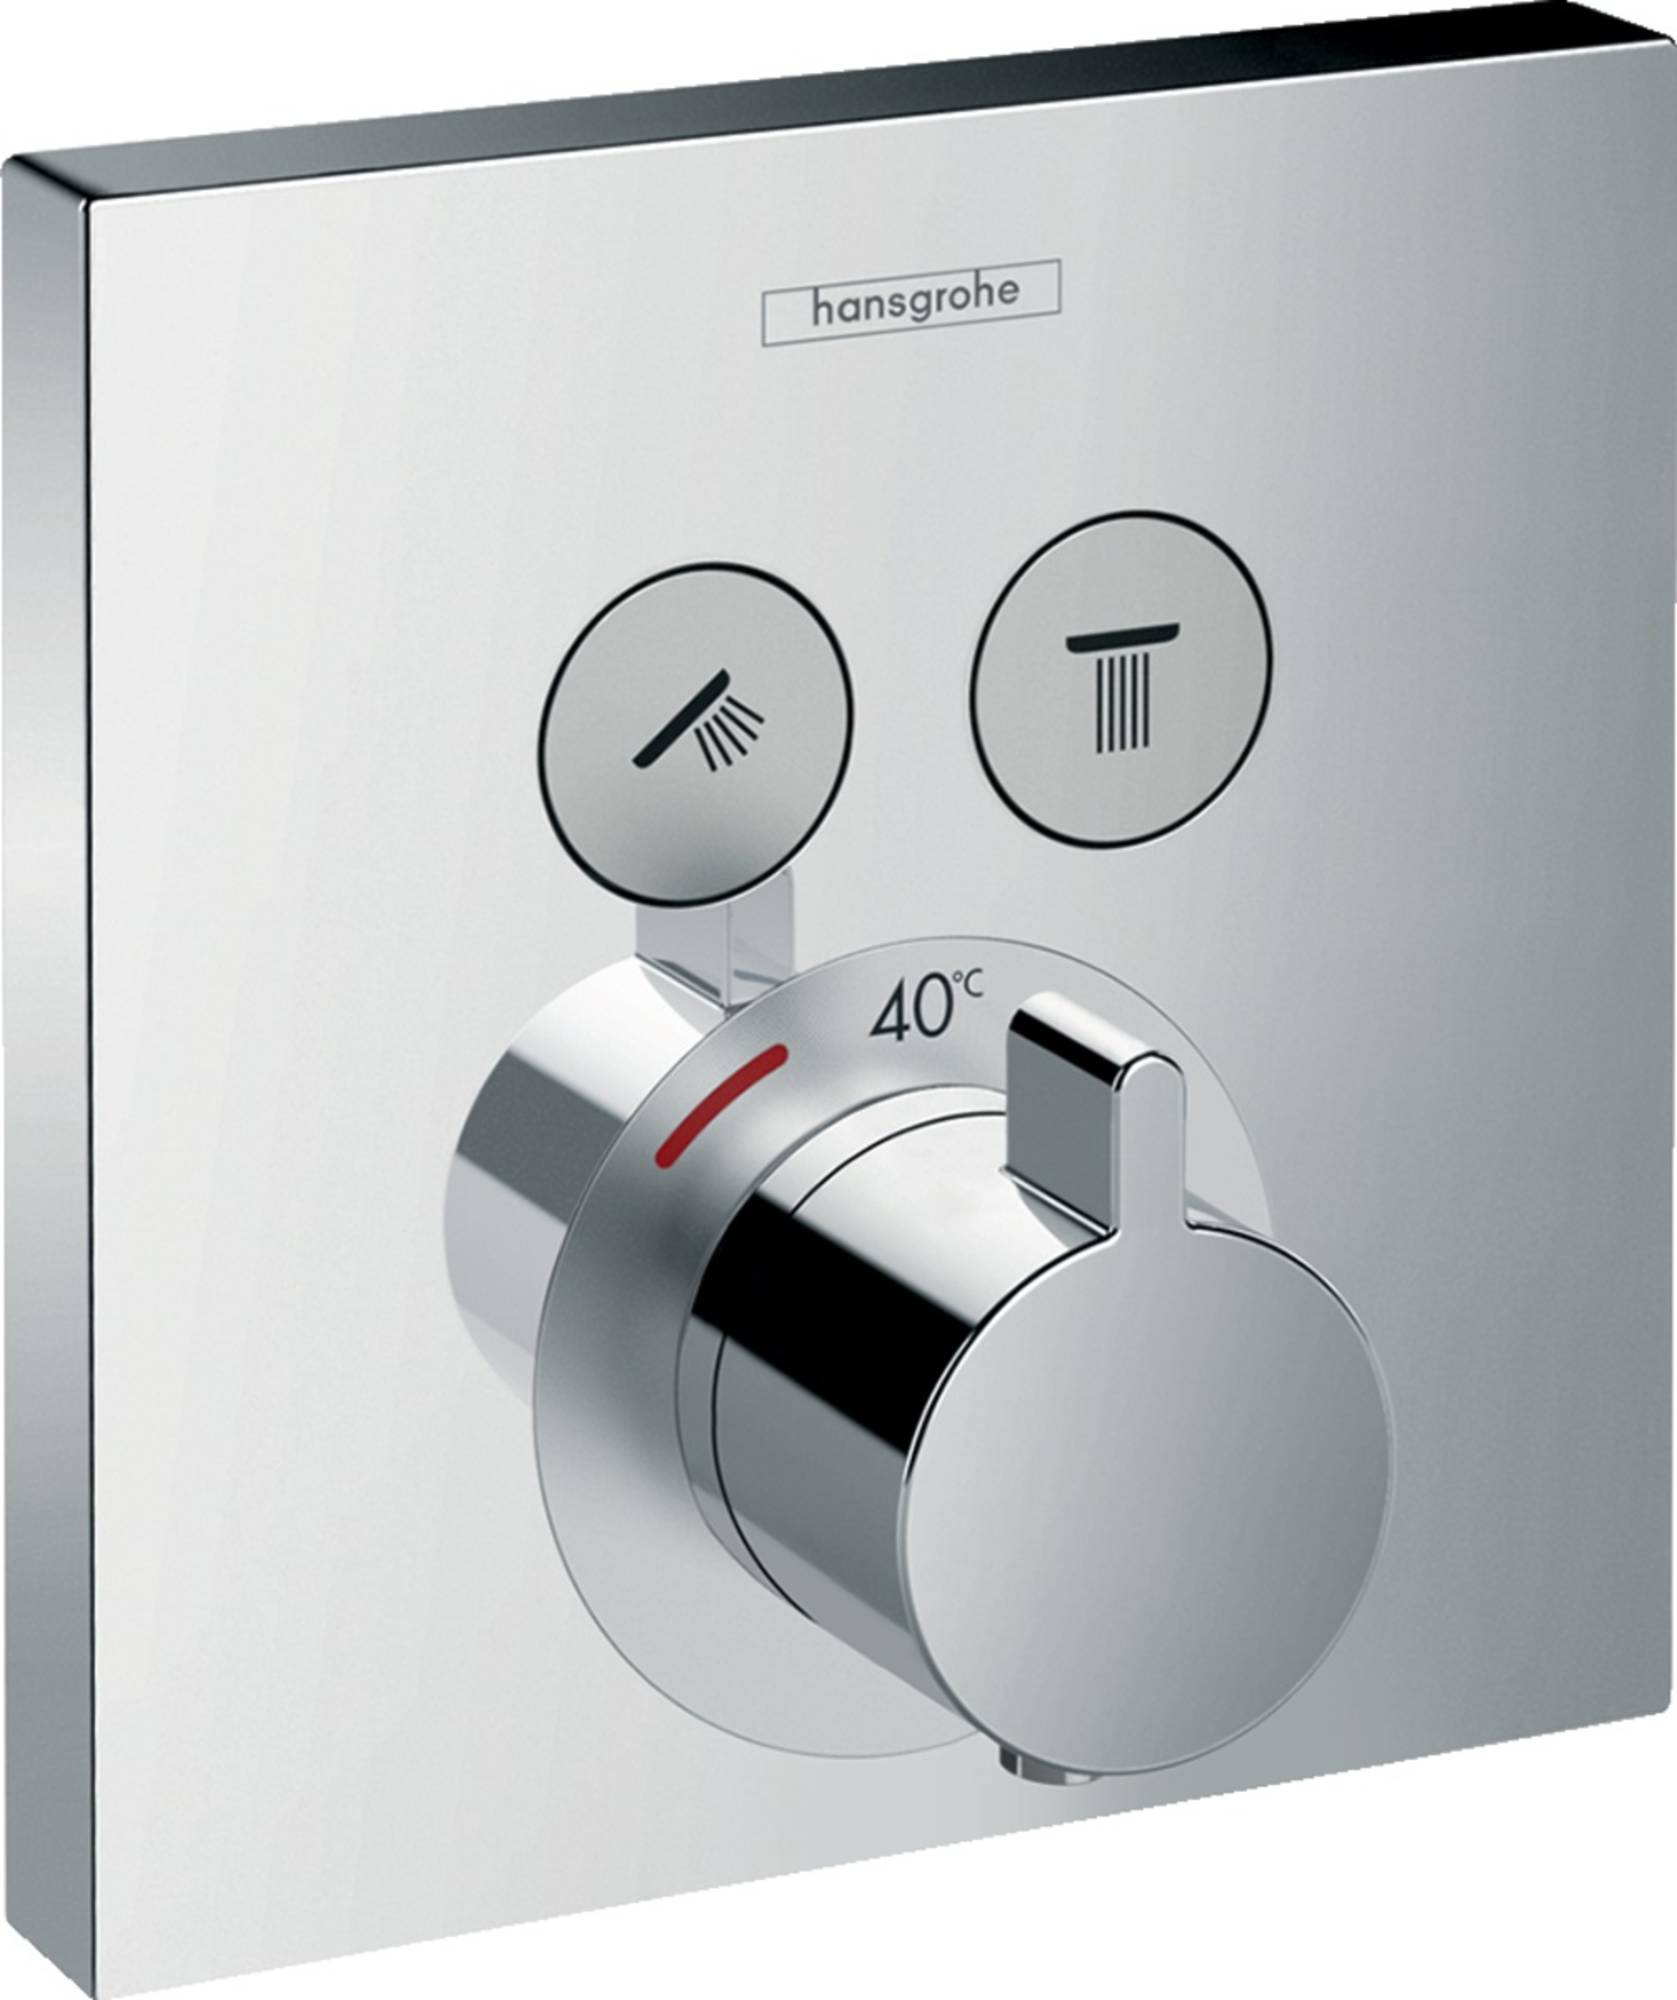 Hansgrohe ShowerSelect afbouwdeel inbouwdeel ibox bad-douchethermostaat chroom 15763000